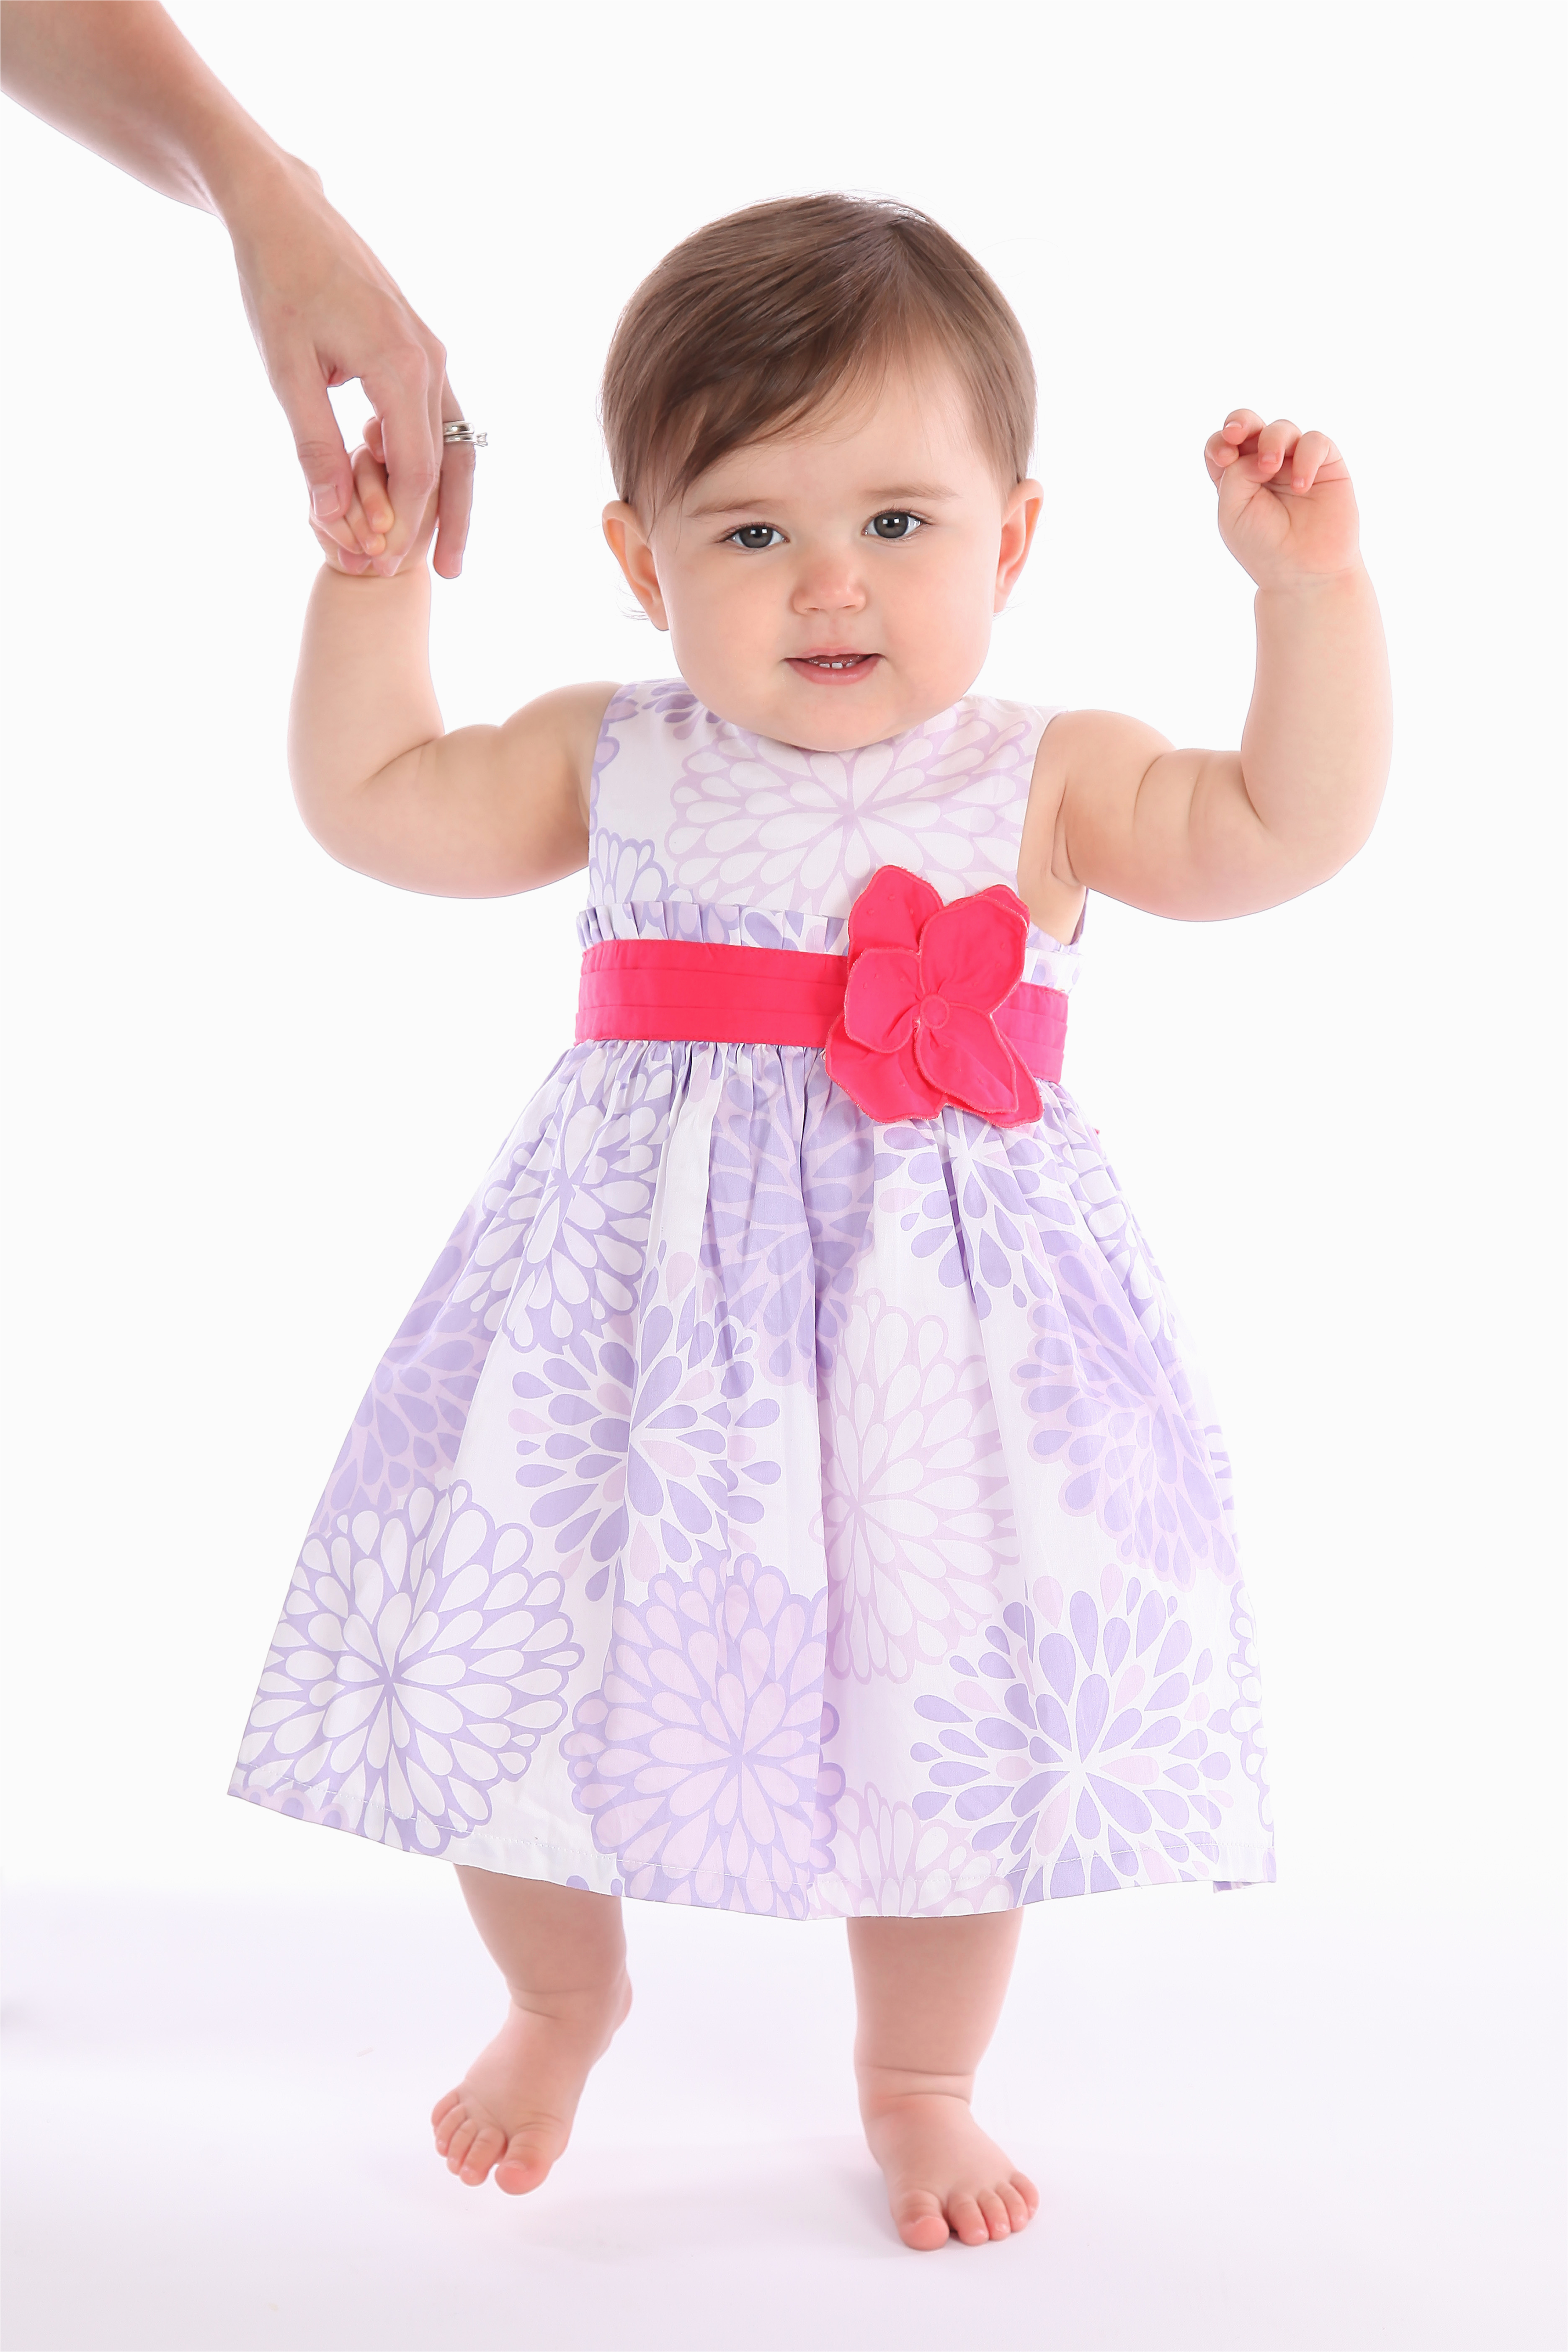 birthday dress for baby girl 1 year old hairstyle for